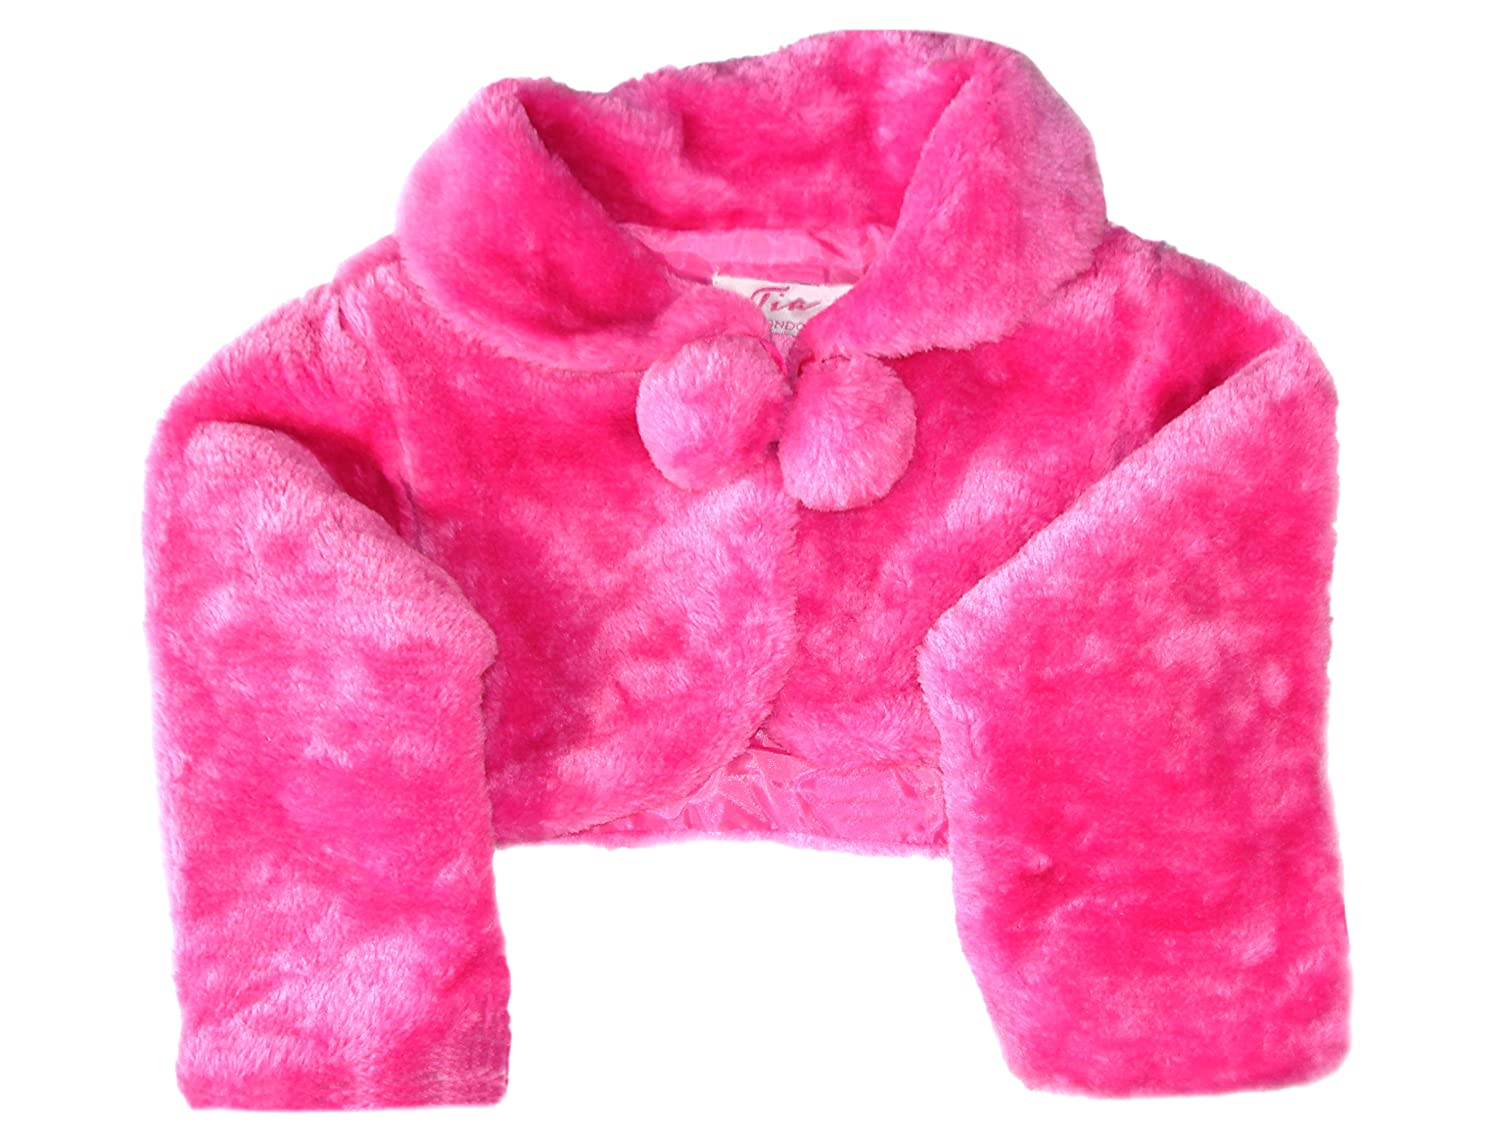 Aelstores - Girls Longsleeve Fur Bolero Shrug For Special Occasion Pom Pom With Ribbon Fastening 0 1 2 3 4 5 6 7 8 9 10 11 12 Years